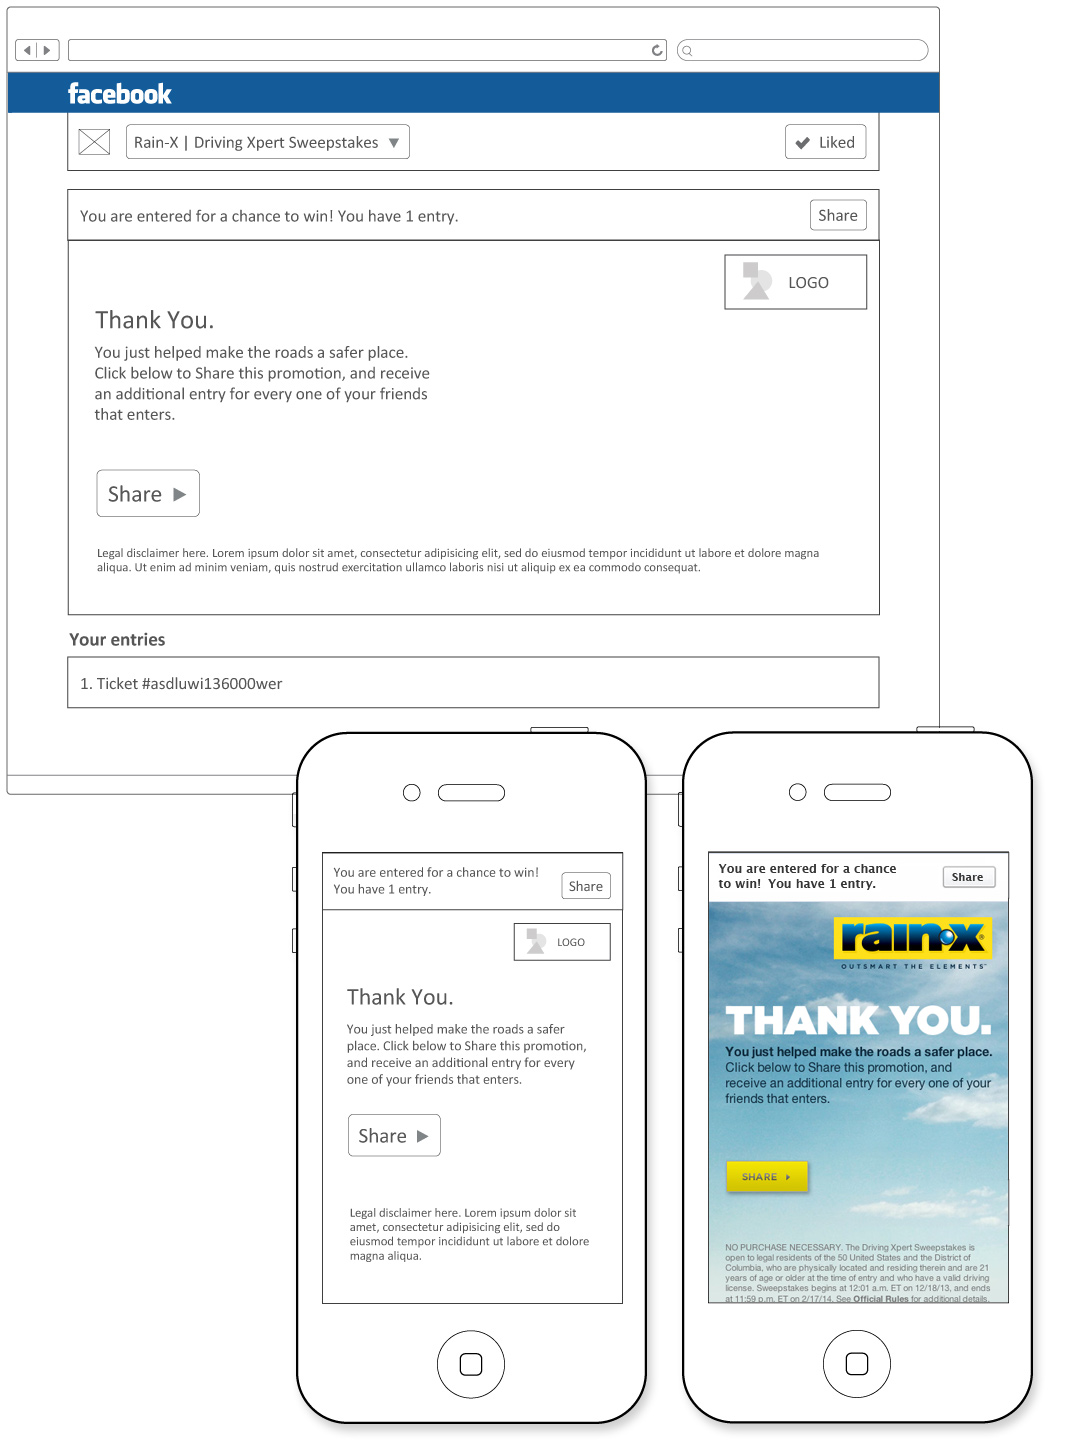 Confirmation page graphics and wireframes